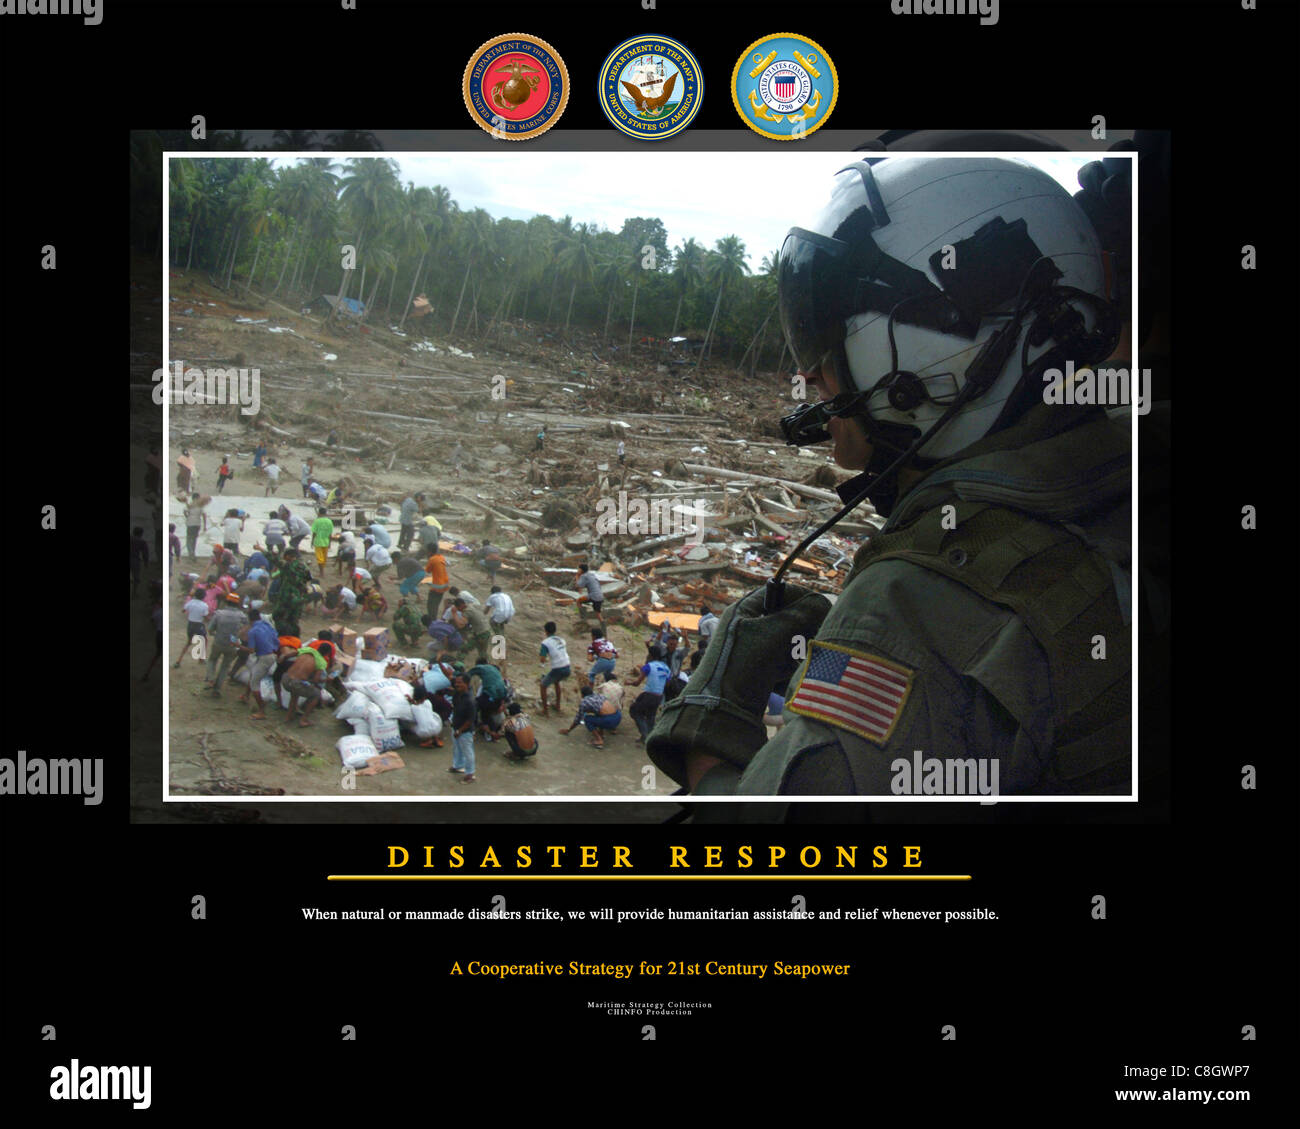 DISASTER RESPONSE - When natural and manmade disasters strike, we will provide humanitarian assistance and relief - Stock Image